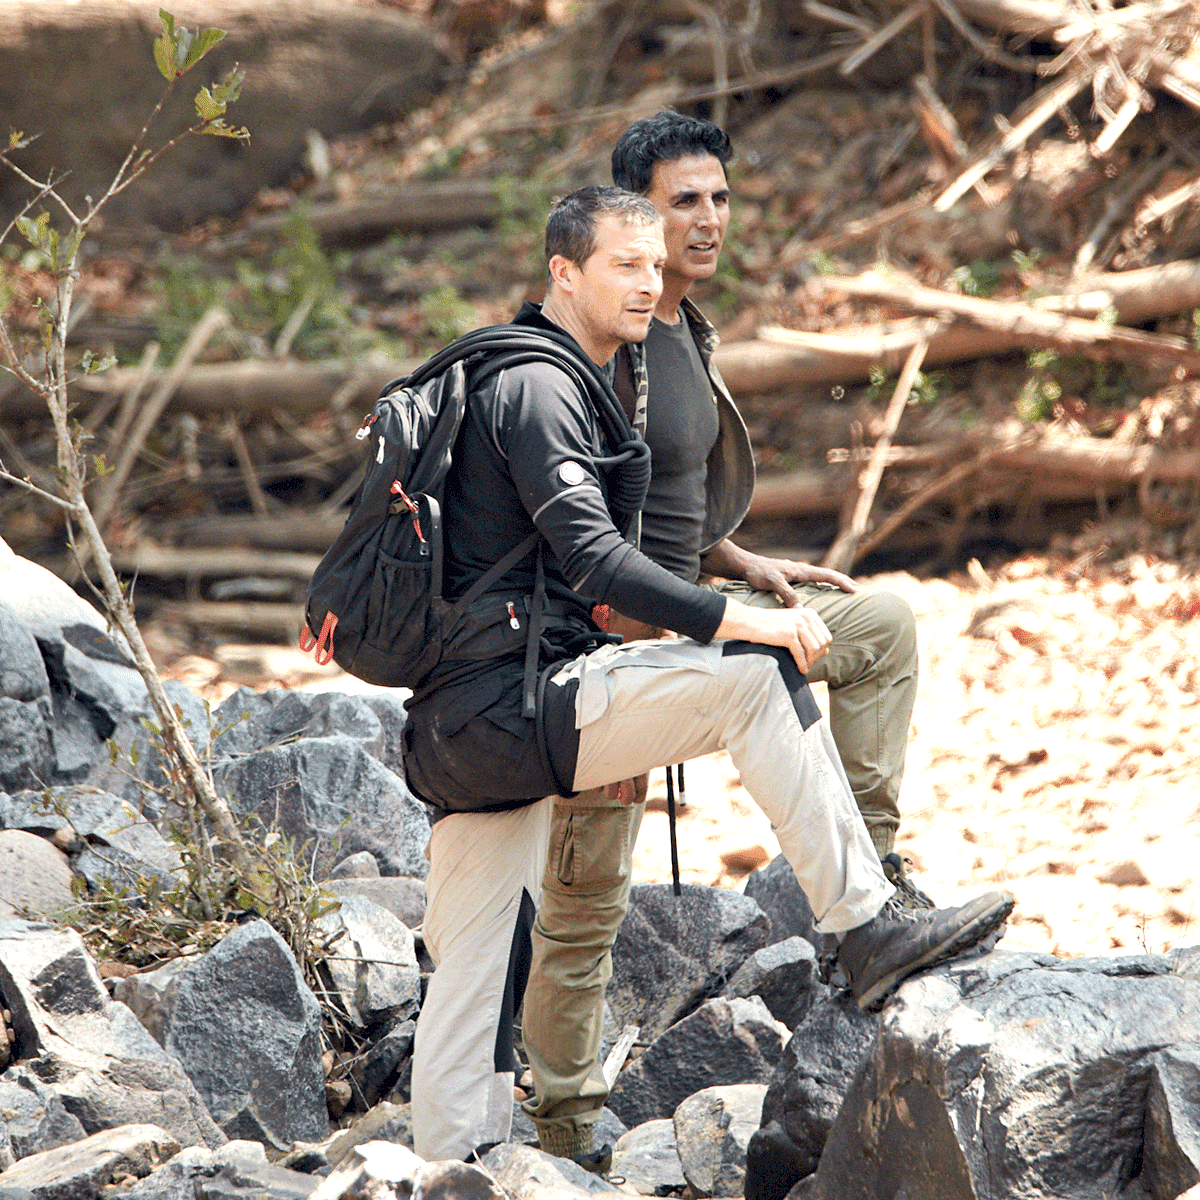 Akshay Talks About His Love For Army In New Bear Grylls Video